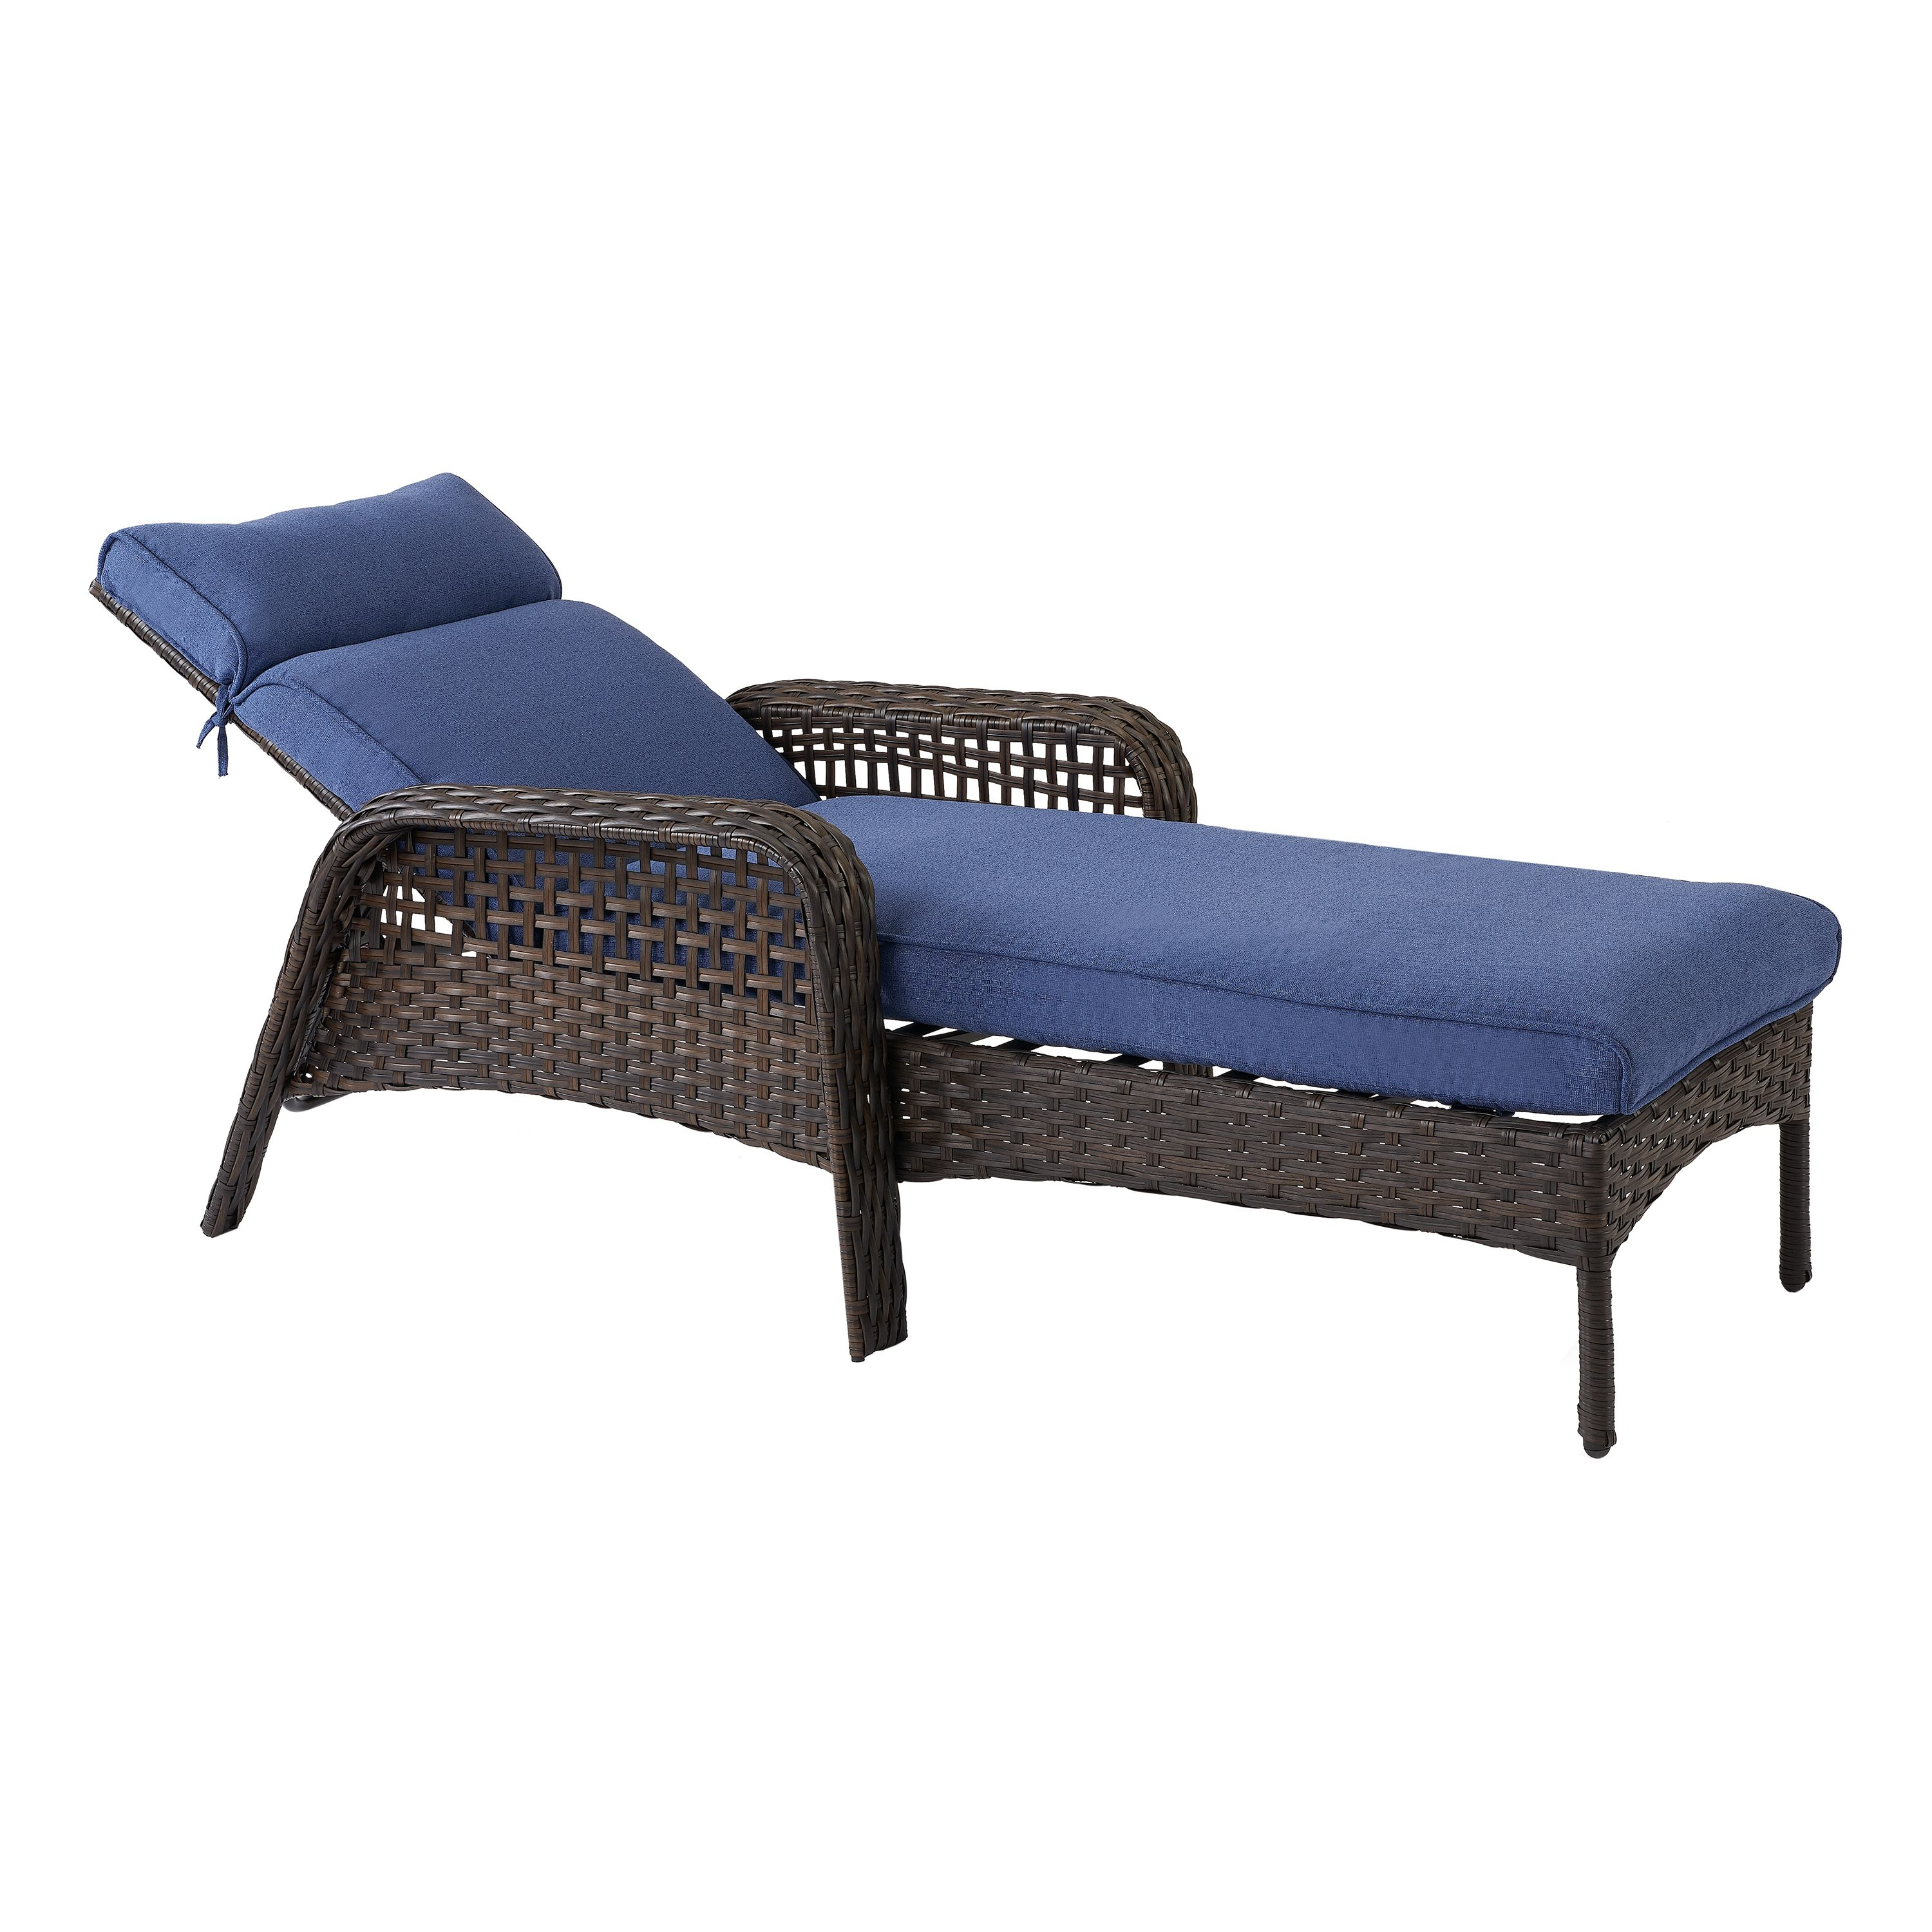 Better Homes & Gardens Ravenbrooke Patio Chaise Lounge